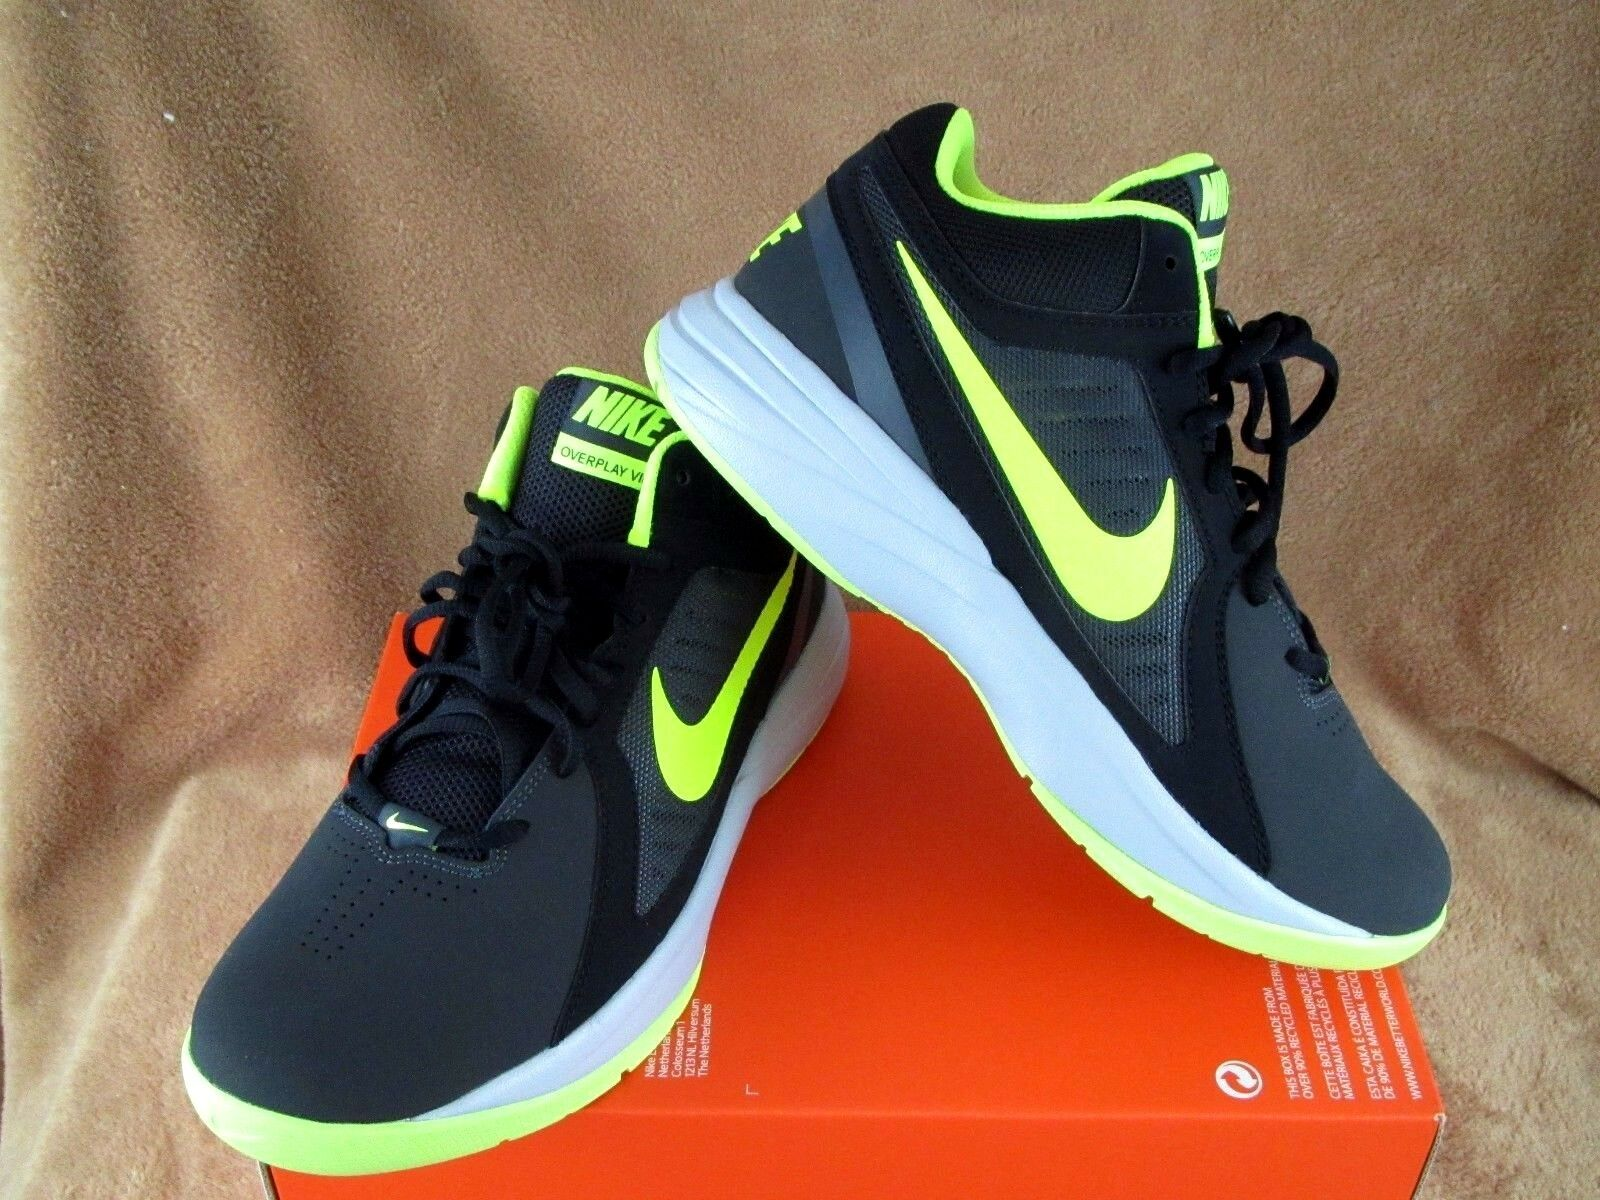 Casual wild NEW NIKE THE OVERPLAY VIII NBK SHOE ANTHRACITE/VOLT/BLK/GREY MEN'S  9